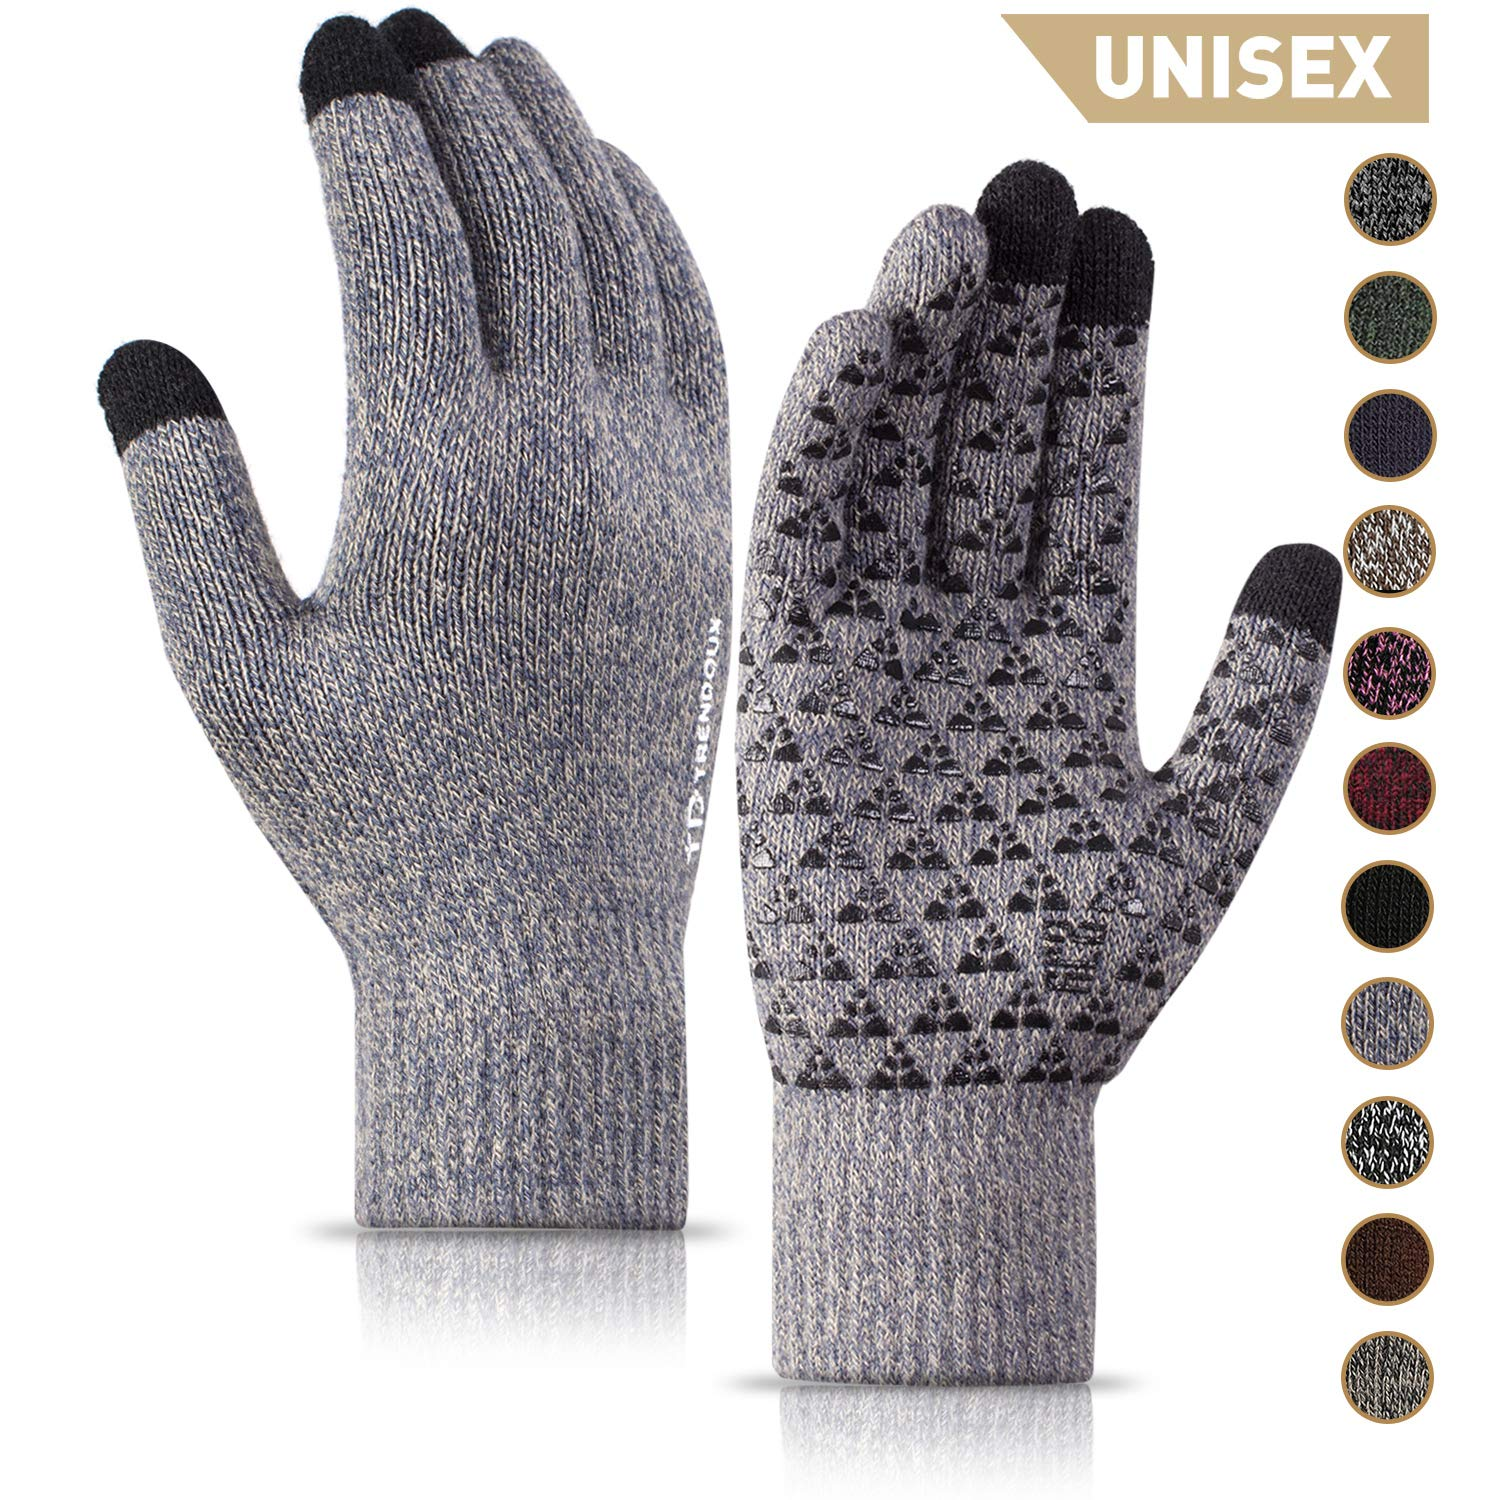 TRENDOUX Winter Gloves for Men and Women - Upgraded Touch Screen Anti-Slip Silicone Gel - Elastic Cuff - Thermal Soft Wool Lining - Knit Stretchy Material